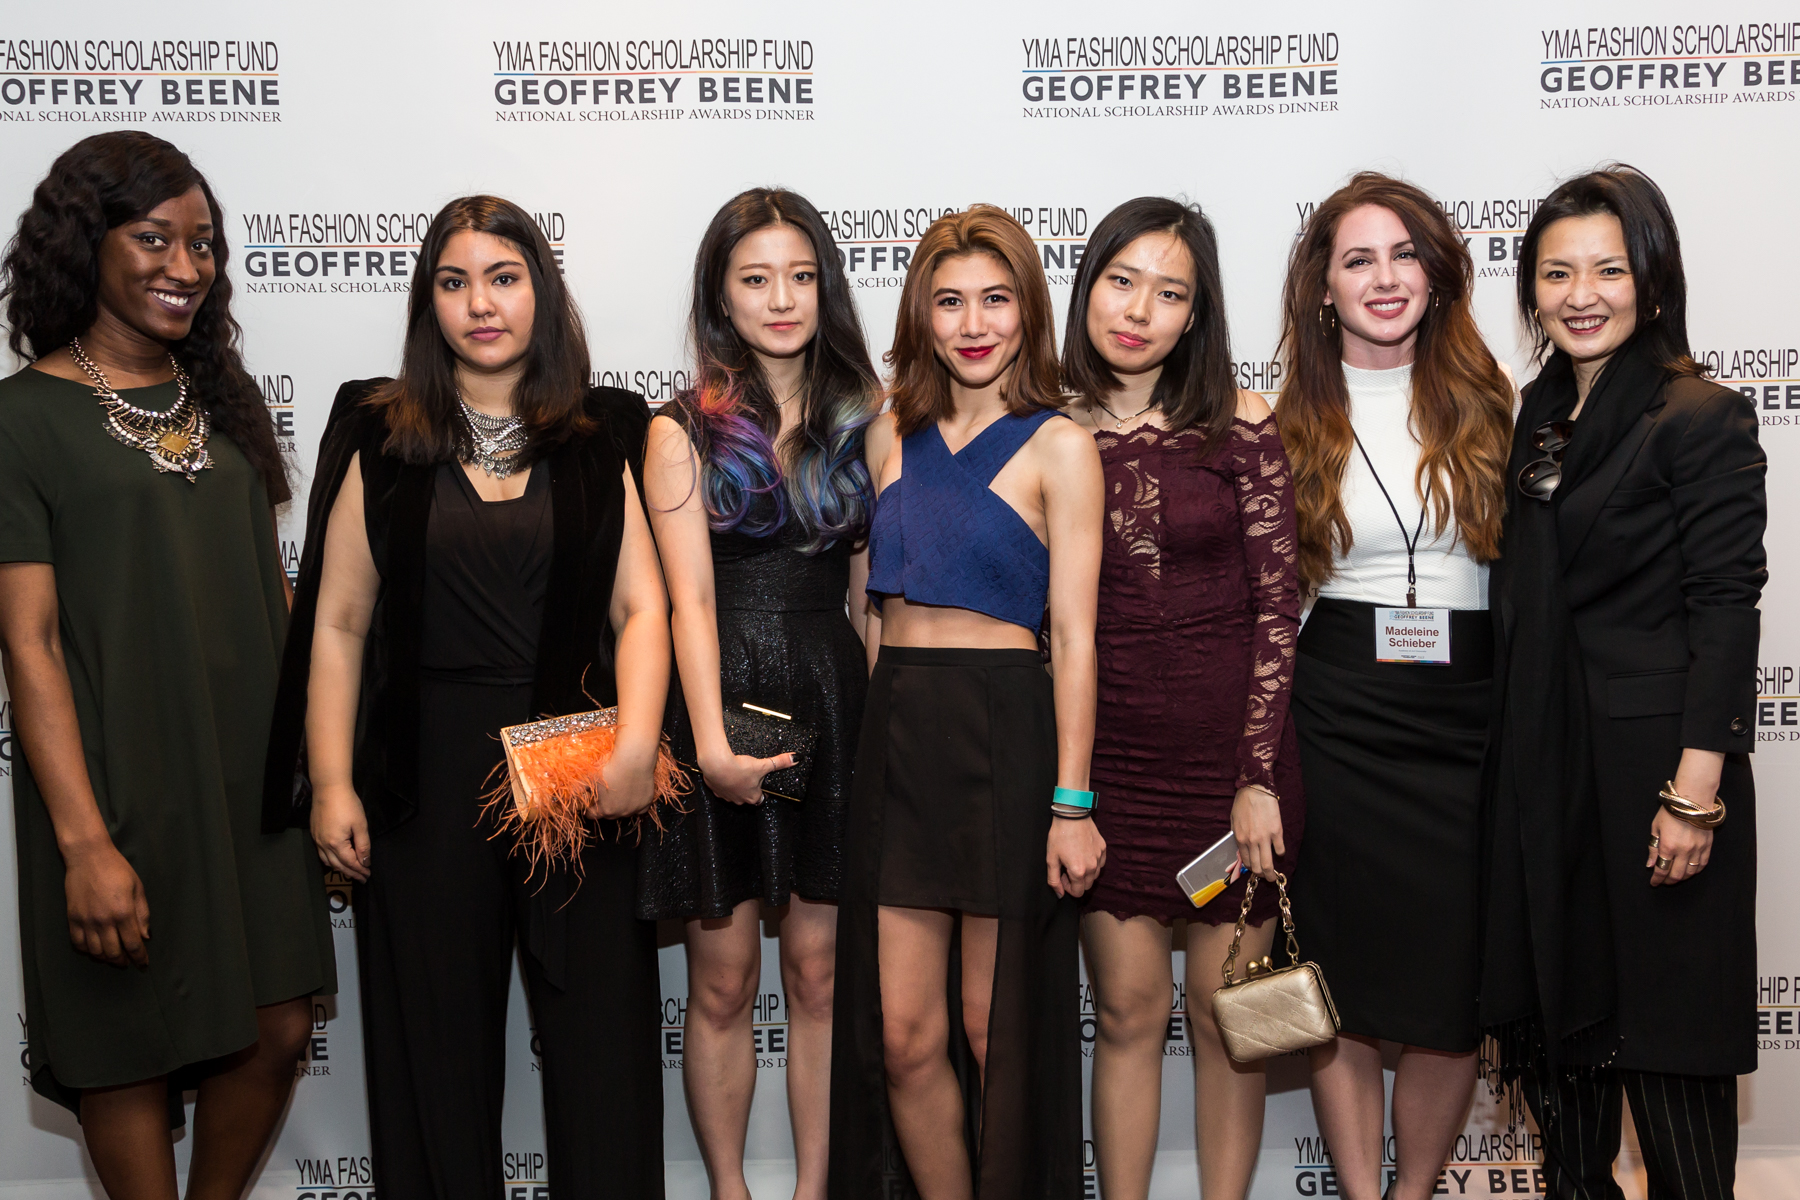 From the left: Kathleen O'Heron, Nathifa Deandrade, Madeline Schieber, Yuna Choi, Busara Boussard, Jisoo Hong.